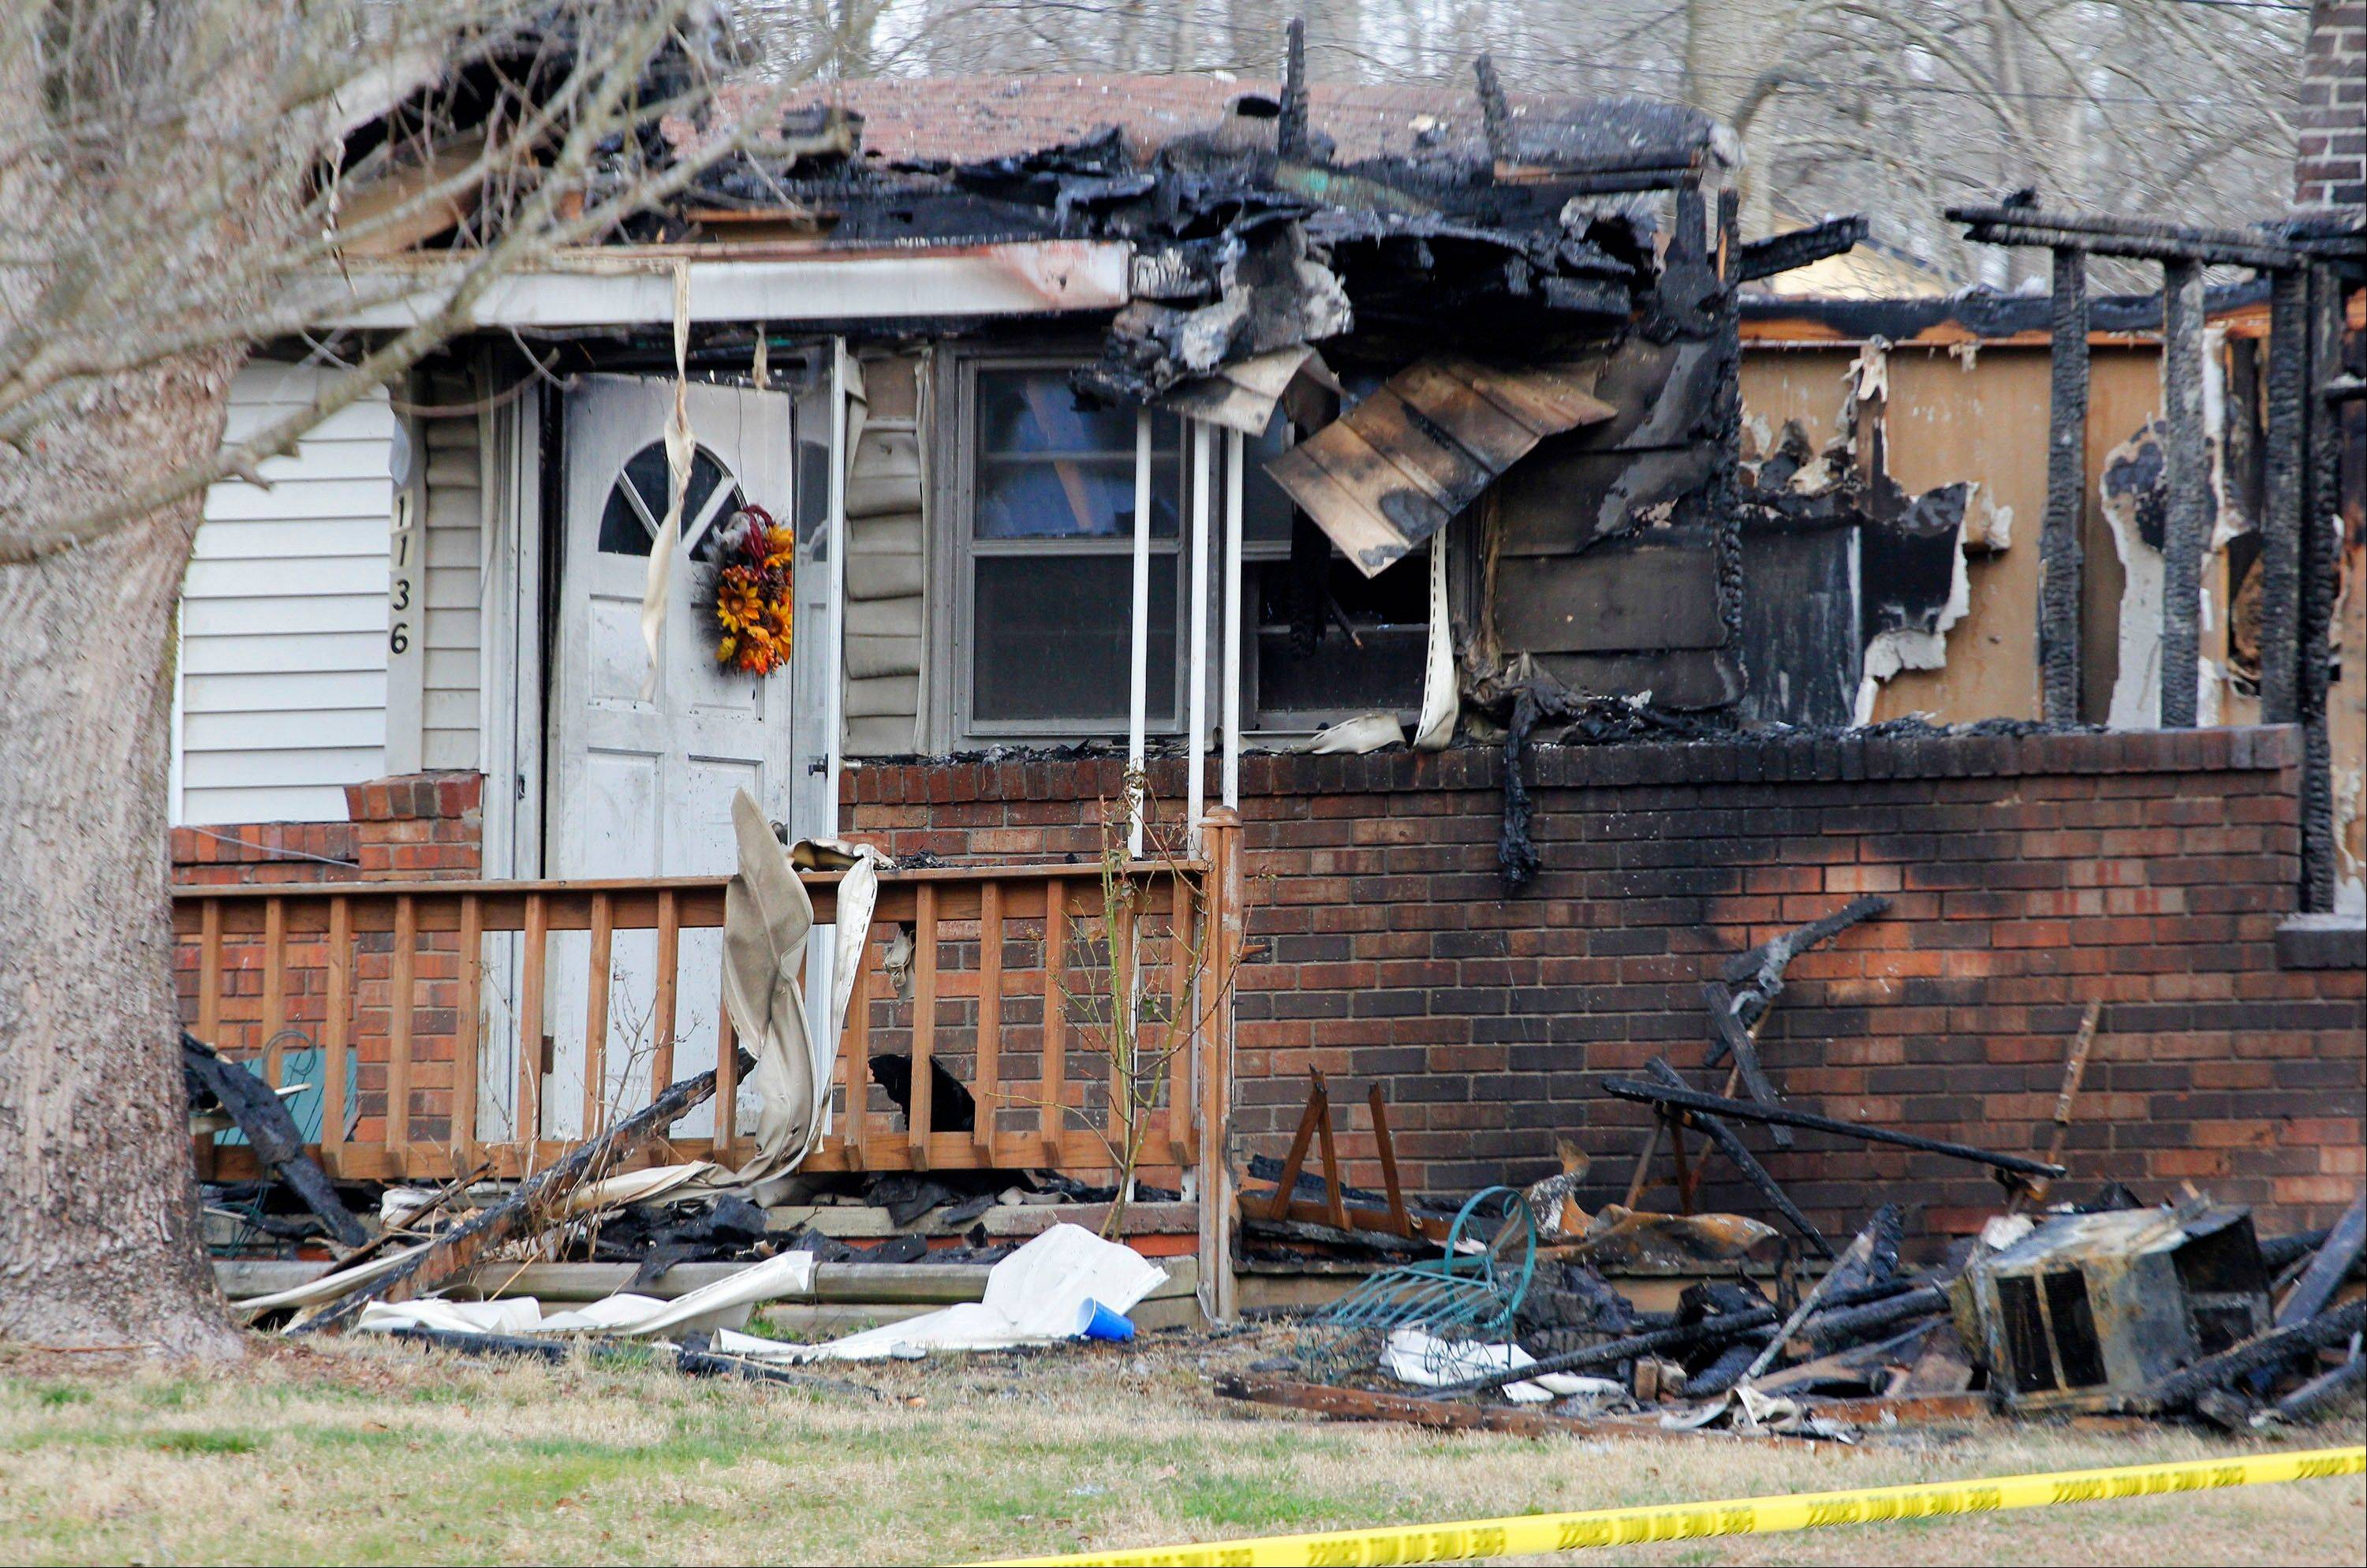 Authorities planned Monday to release more information about a Saturday house fire in the Appalachian foothills of Kentucky that killed a man, his pregnant fiancee and five children.